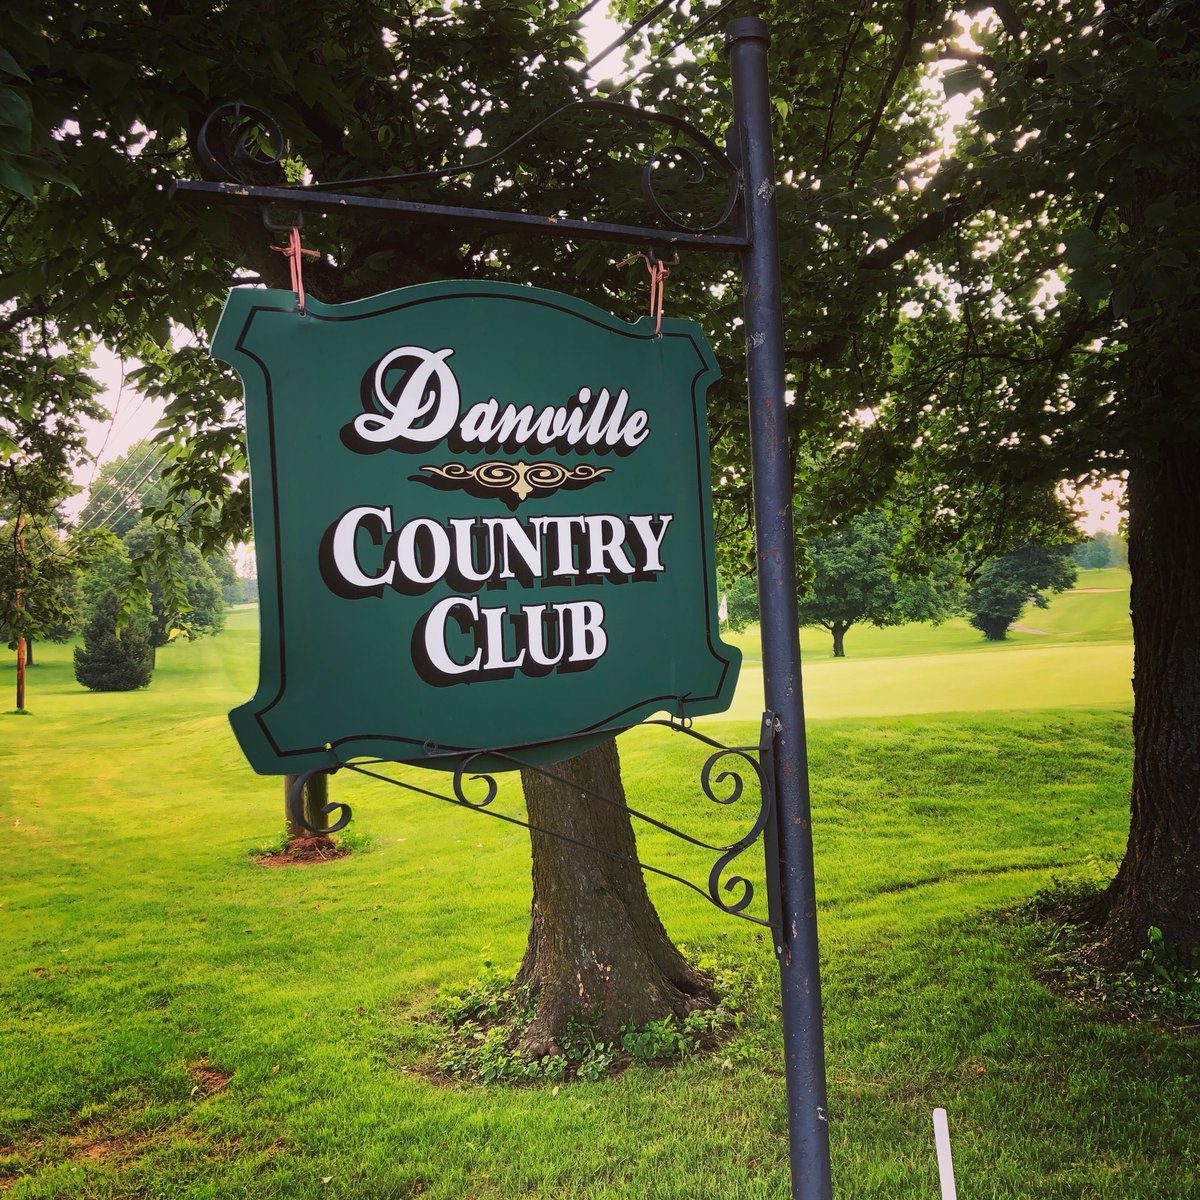 Want to recognize @DanvilleCC for everything they do for our golf program! We are lucky to be able to play and practice here throughout our season. #thankfulforfamily #centrealumni #CentreGolf<br>http://pic.twitter.com/t6BuCKSDd4